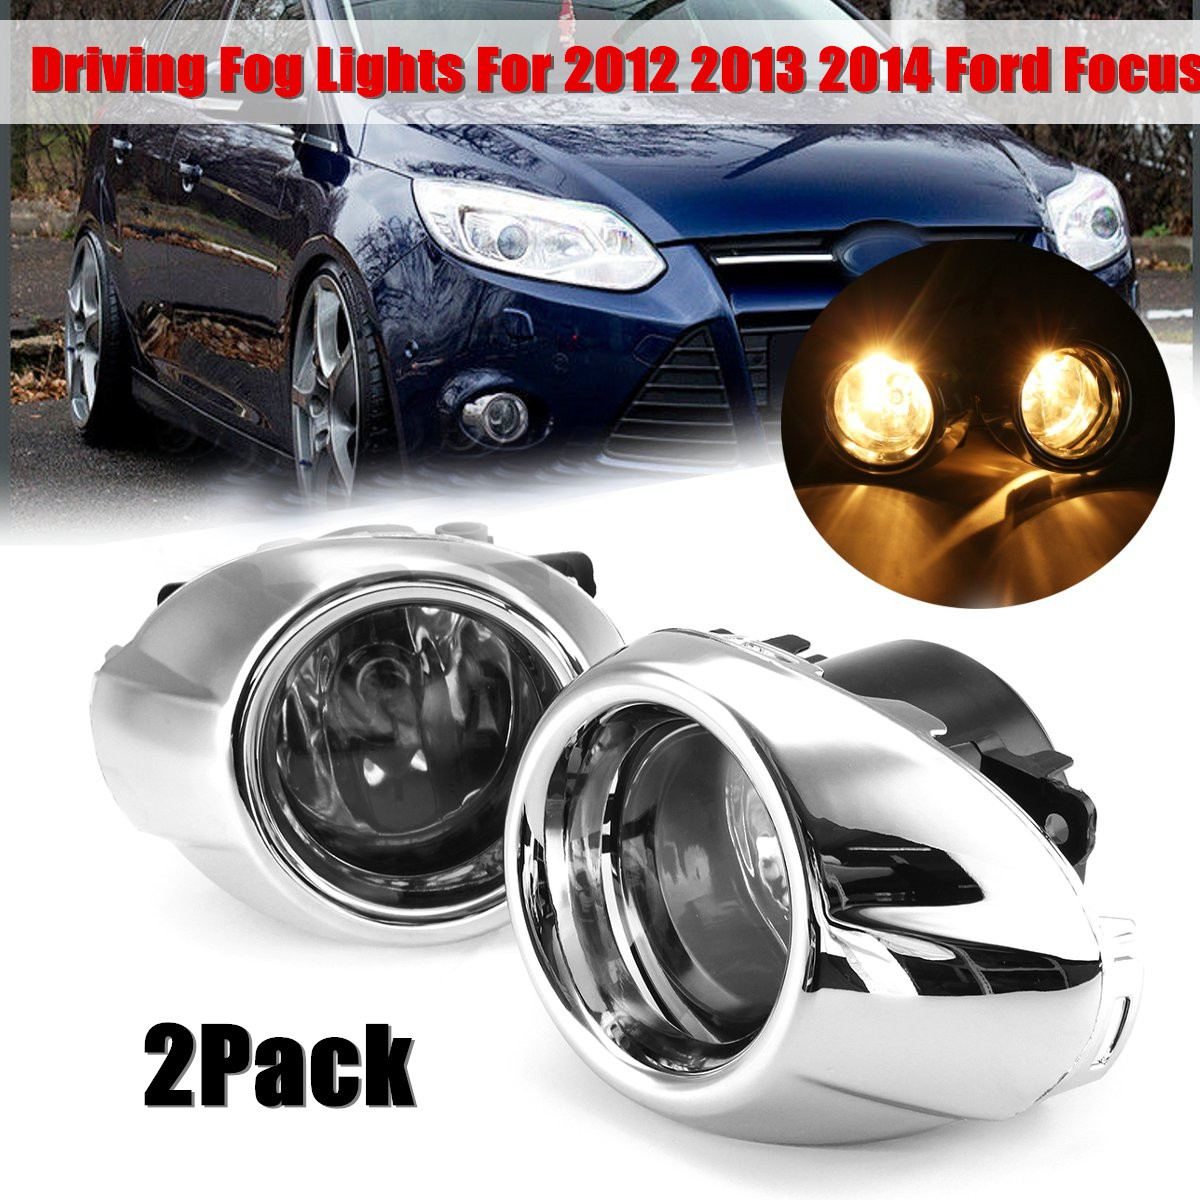 1 Pair Replacement Clear Lens Fog Lights Lamps Bulbs For 2012 2013 2014 Ford-Focus S/SE/SEL/Titanium